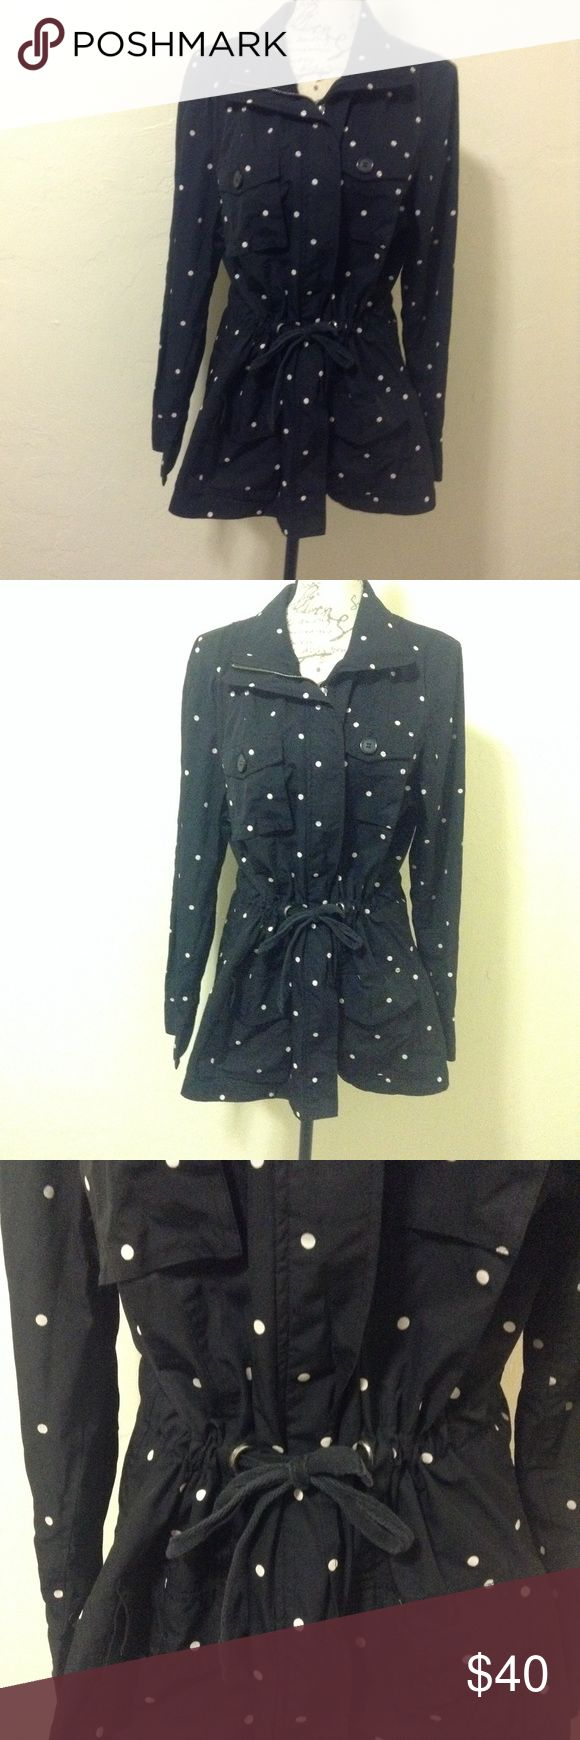 Charter Club Polka Dot Jacket Zip up jacket this ties up in the middle. In good used condition! 100% polyester. Bundles and reasonable offers welcome :) Charter Club Jackets & Coats